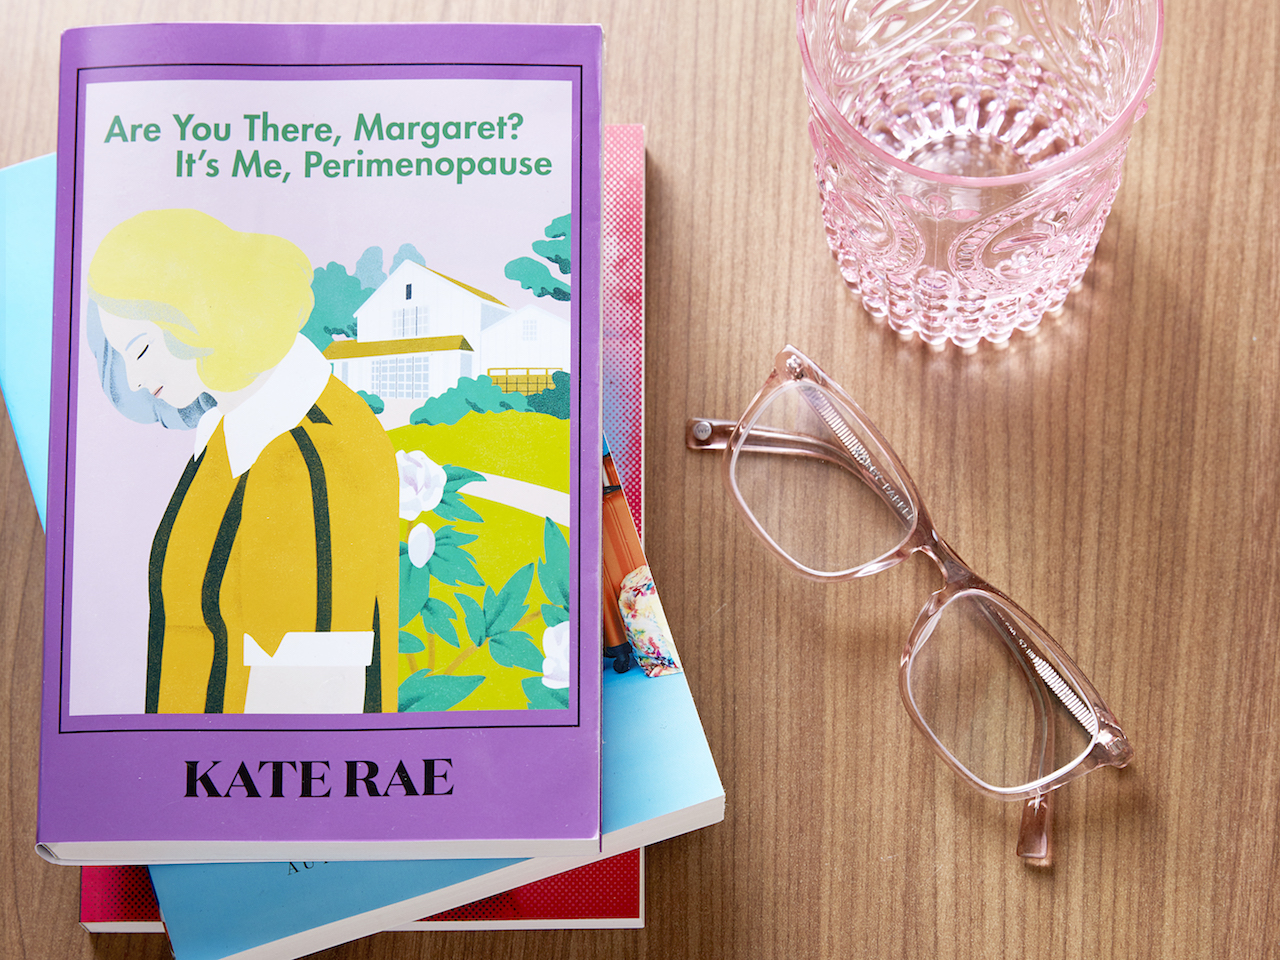 """Overhead shot of a stack of books, glasses, and an empty glass of water. Top book on stack says """"Are you there, Margaret? It's me, Perimenopause"""" and shows a blonde woman hanging her head"""